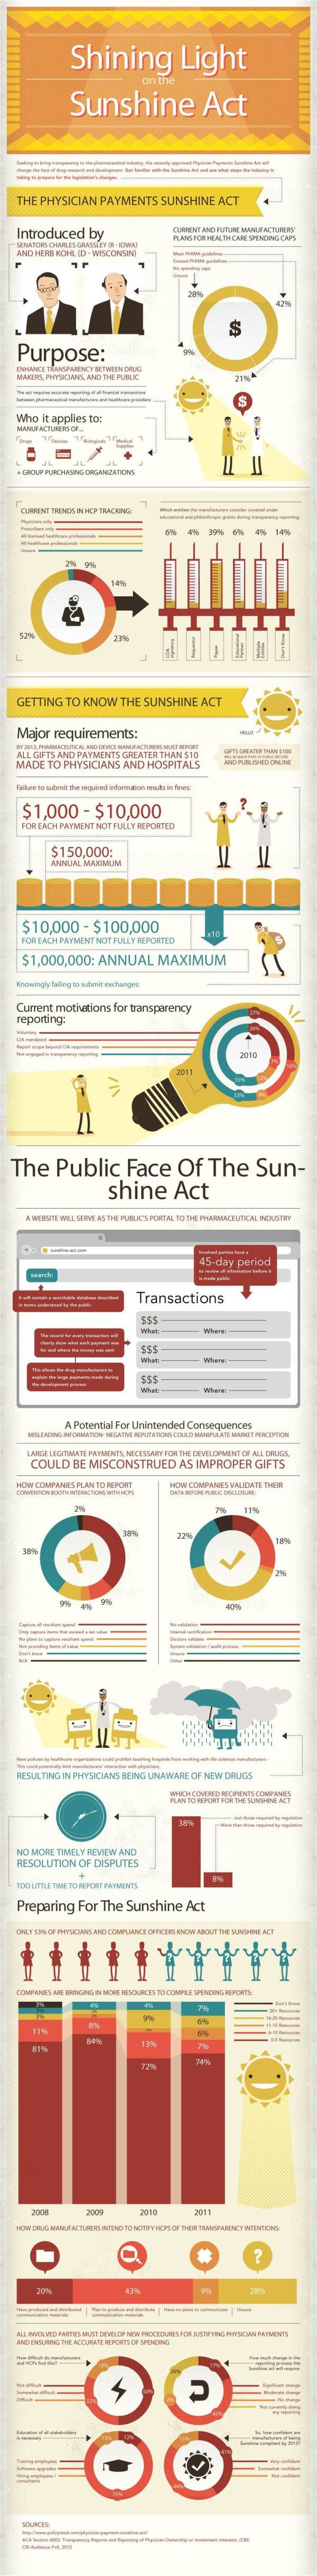 Pharma Compliance Info The State of Sunshine